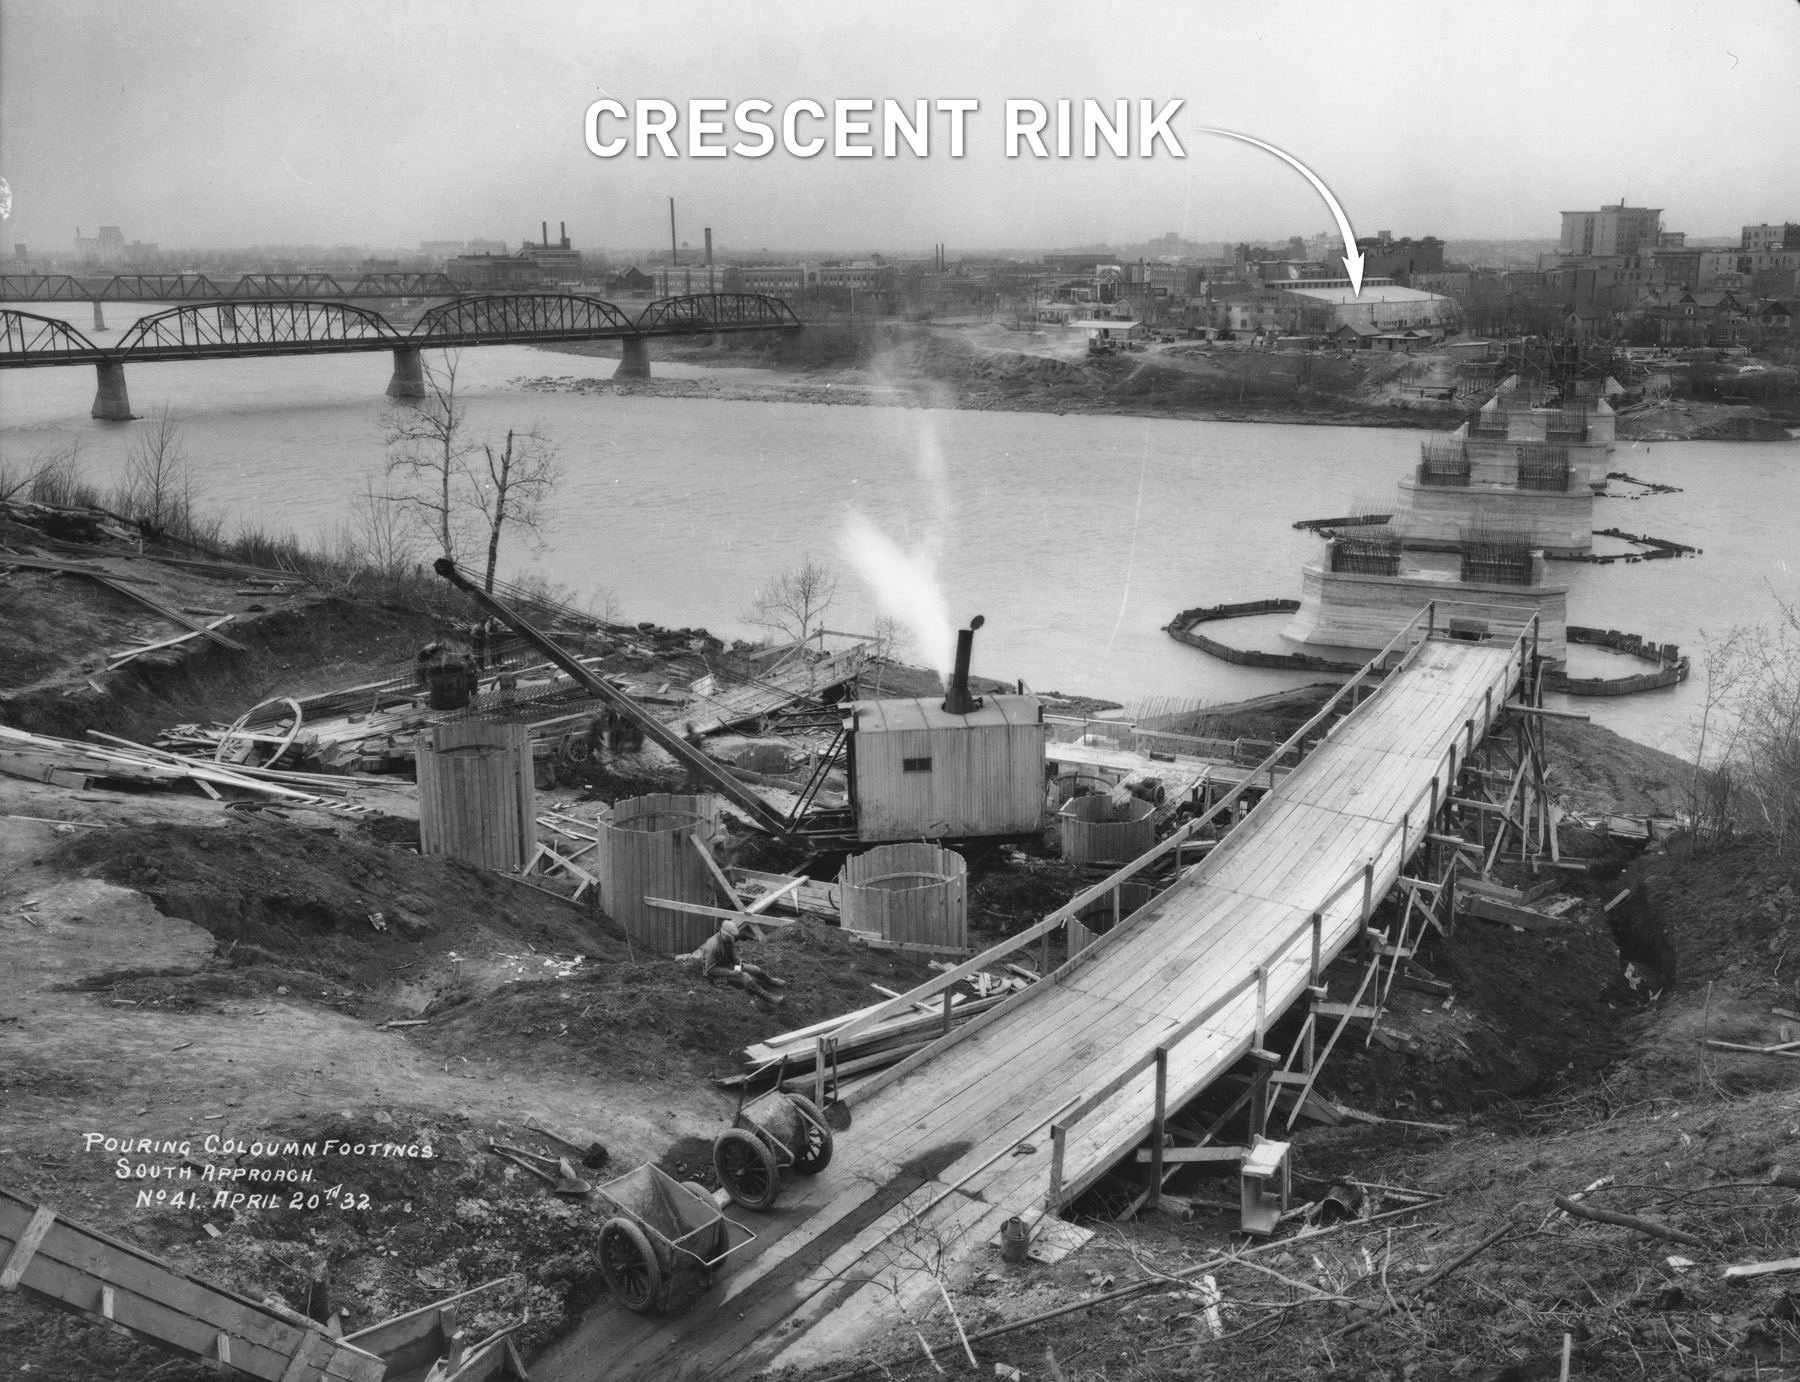 The Broadway Bridge, under construction in 1932. Crescent Rink is on the other side of the South Saskatchewan River. (Saskatoon Public Library Local History Room - Photo A-175)